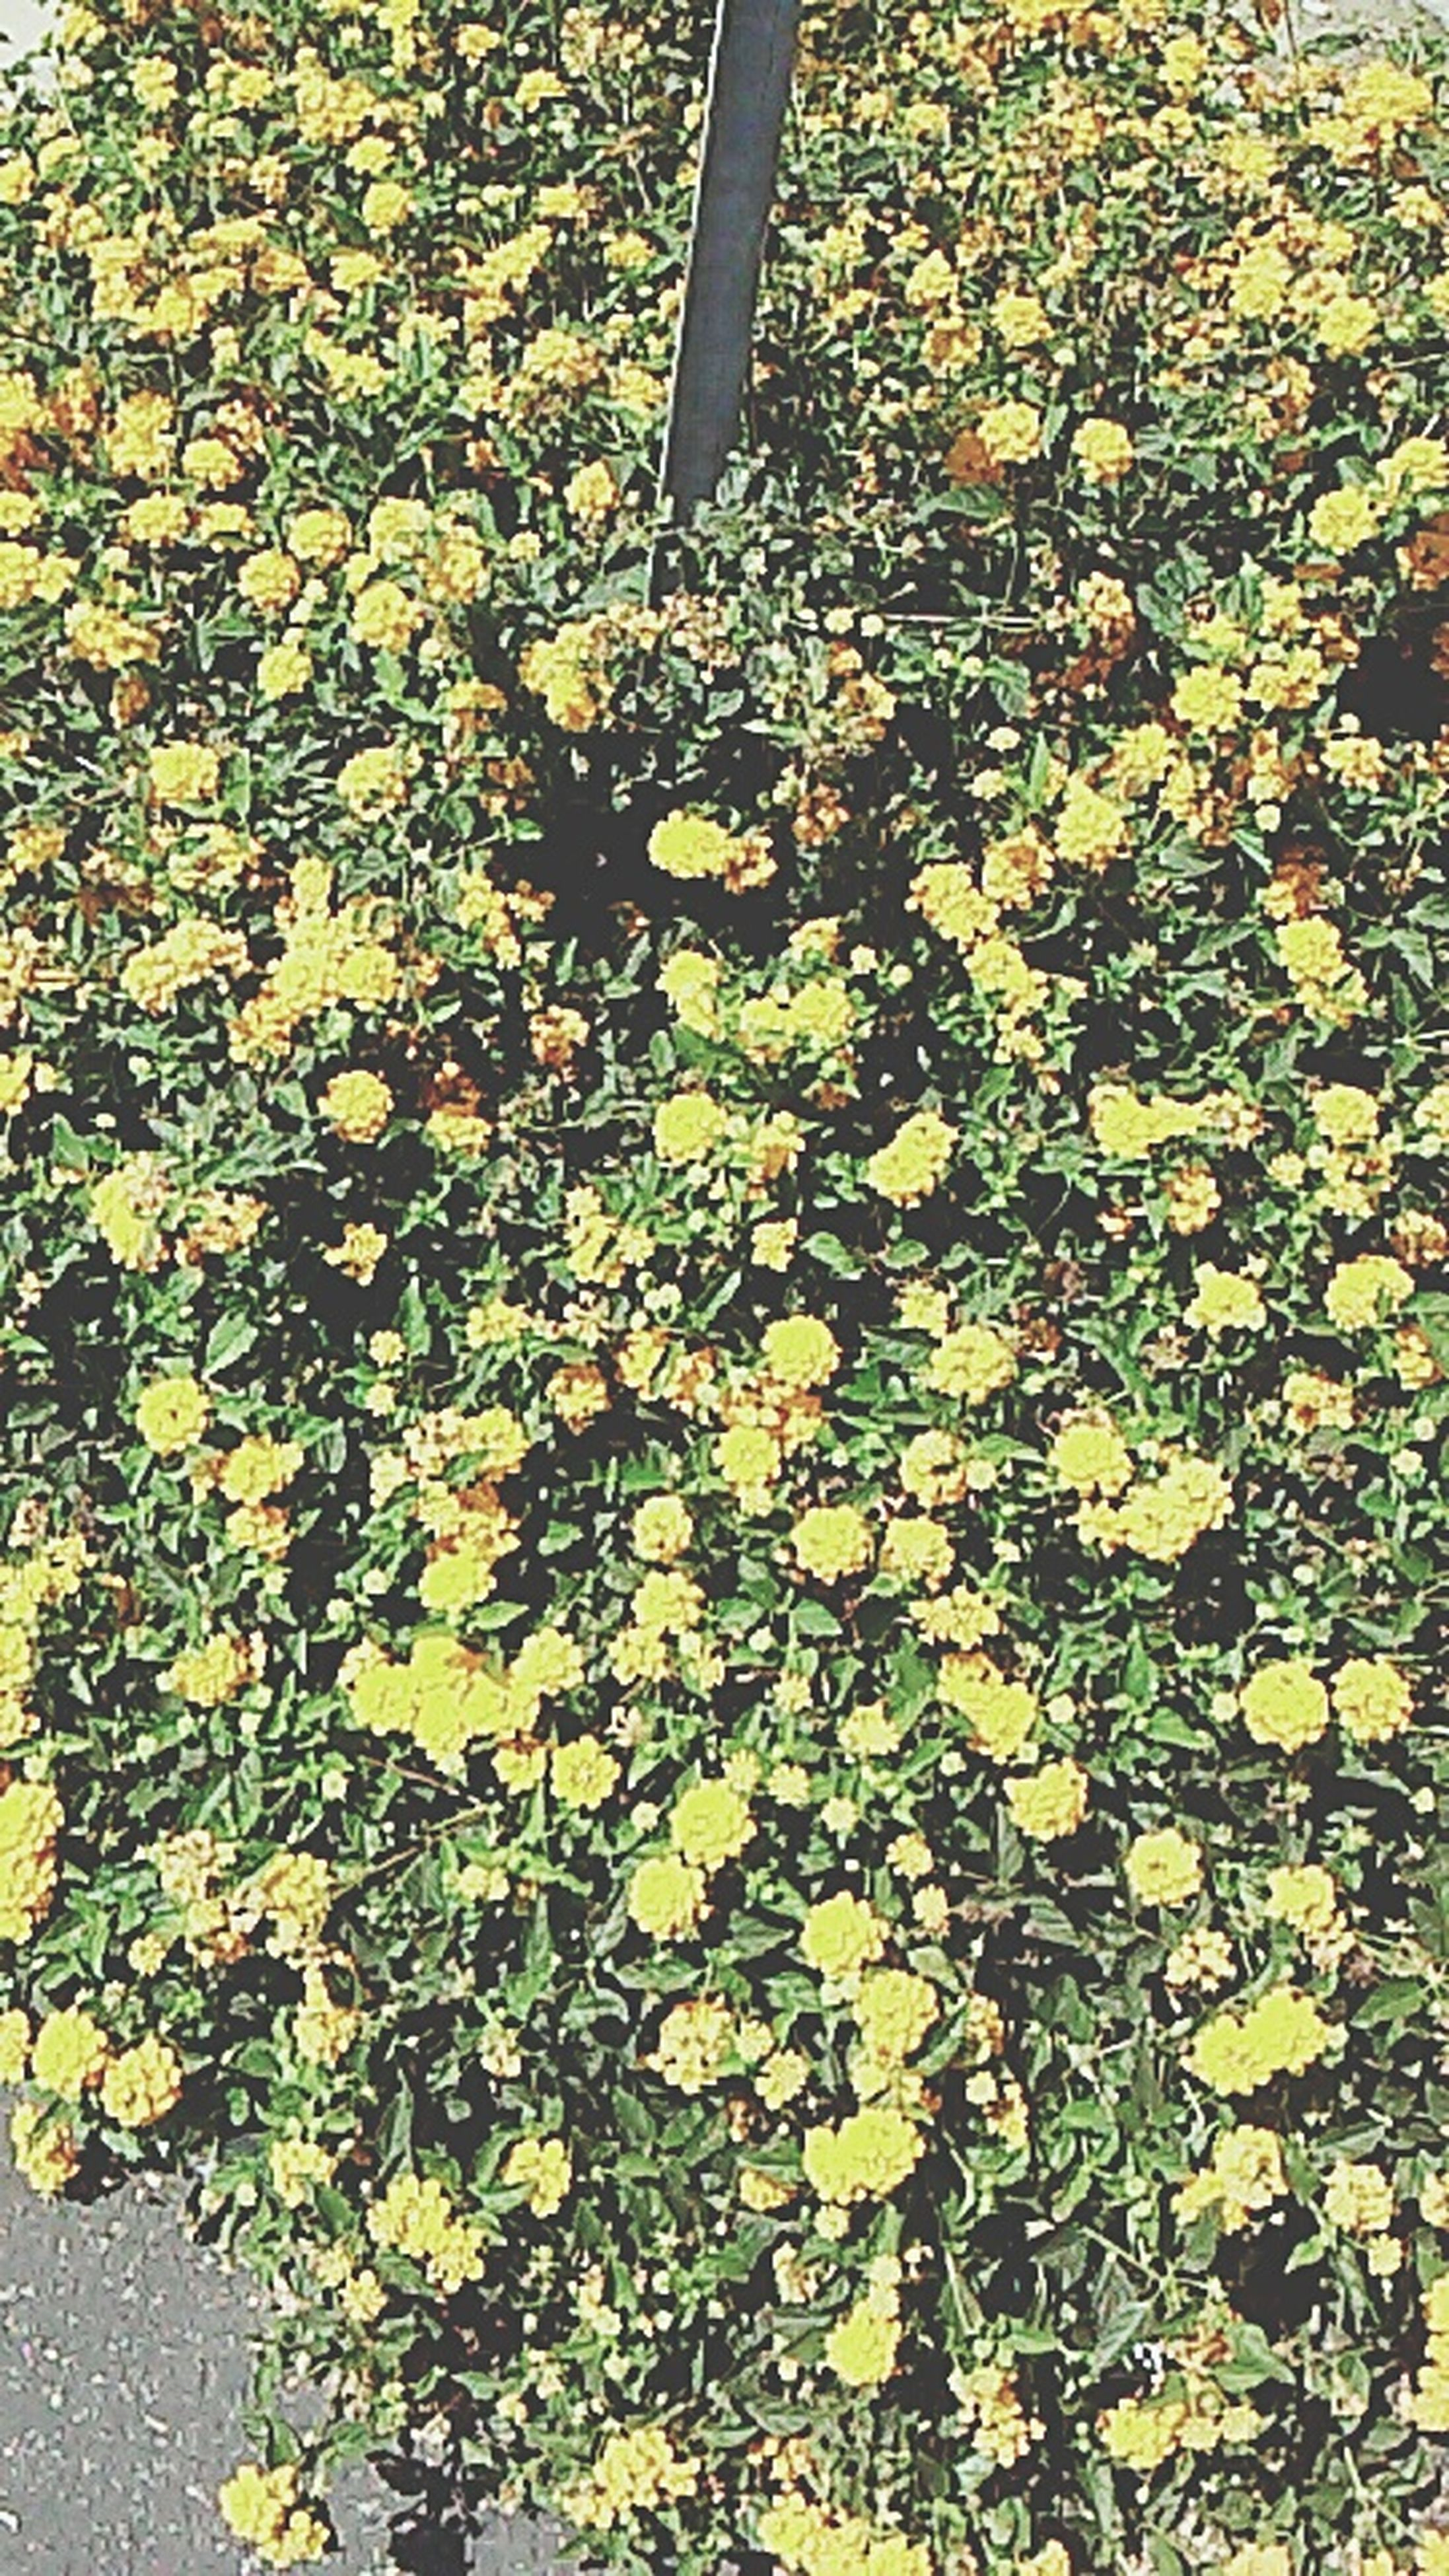 yellow, growth, flower, high angle view, plant, nature, leaf, day, outdoors, sunlight, no people, park - man made space, tree, freshness, beauty in nature, field, autumn, shadow, season, fragility